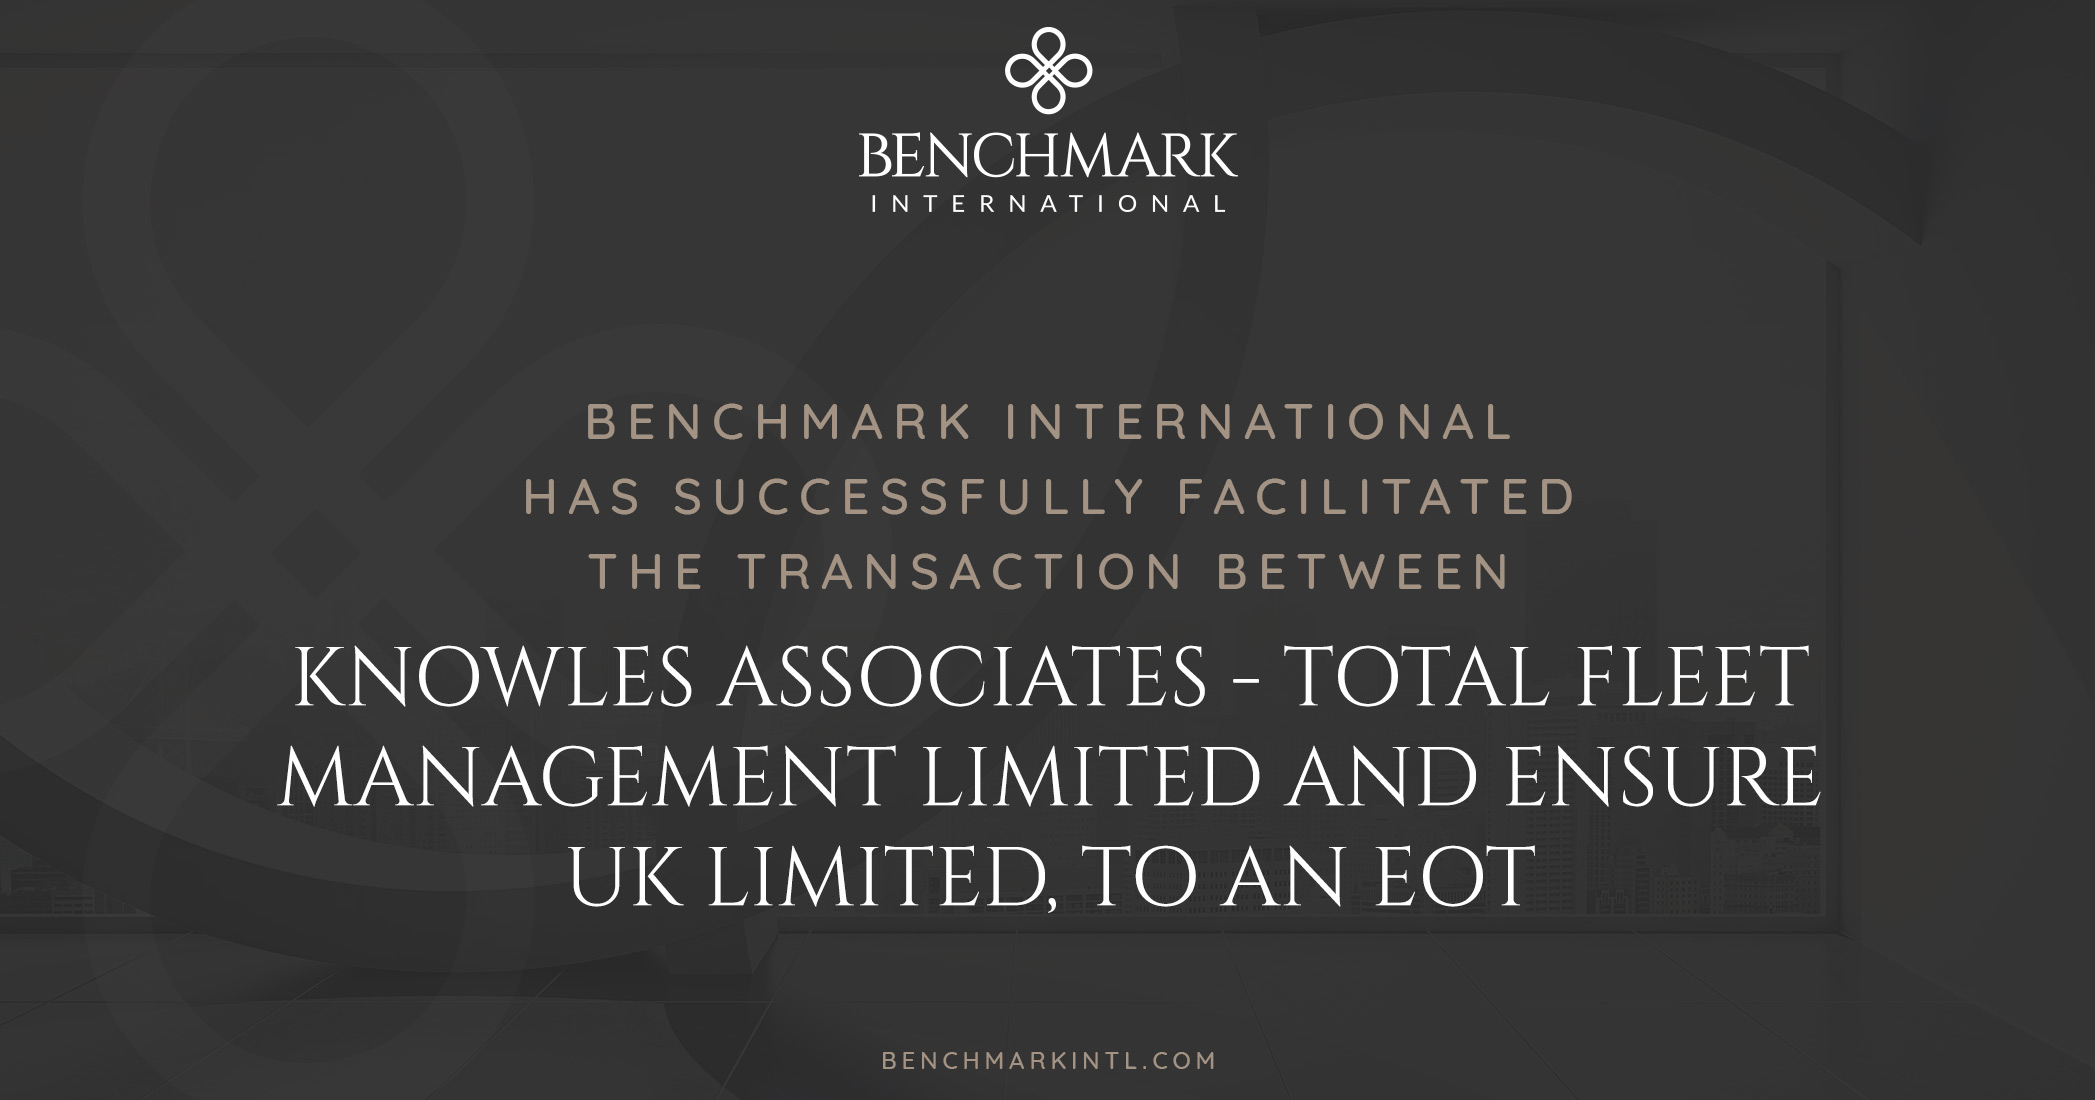 Benchmark International Completes the Sale of Knowles Associates - Total Fleet Management Limited and Ensure UK Limited, to an EOT